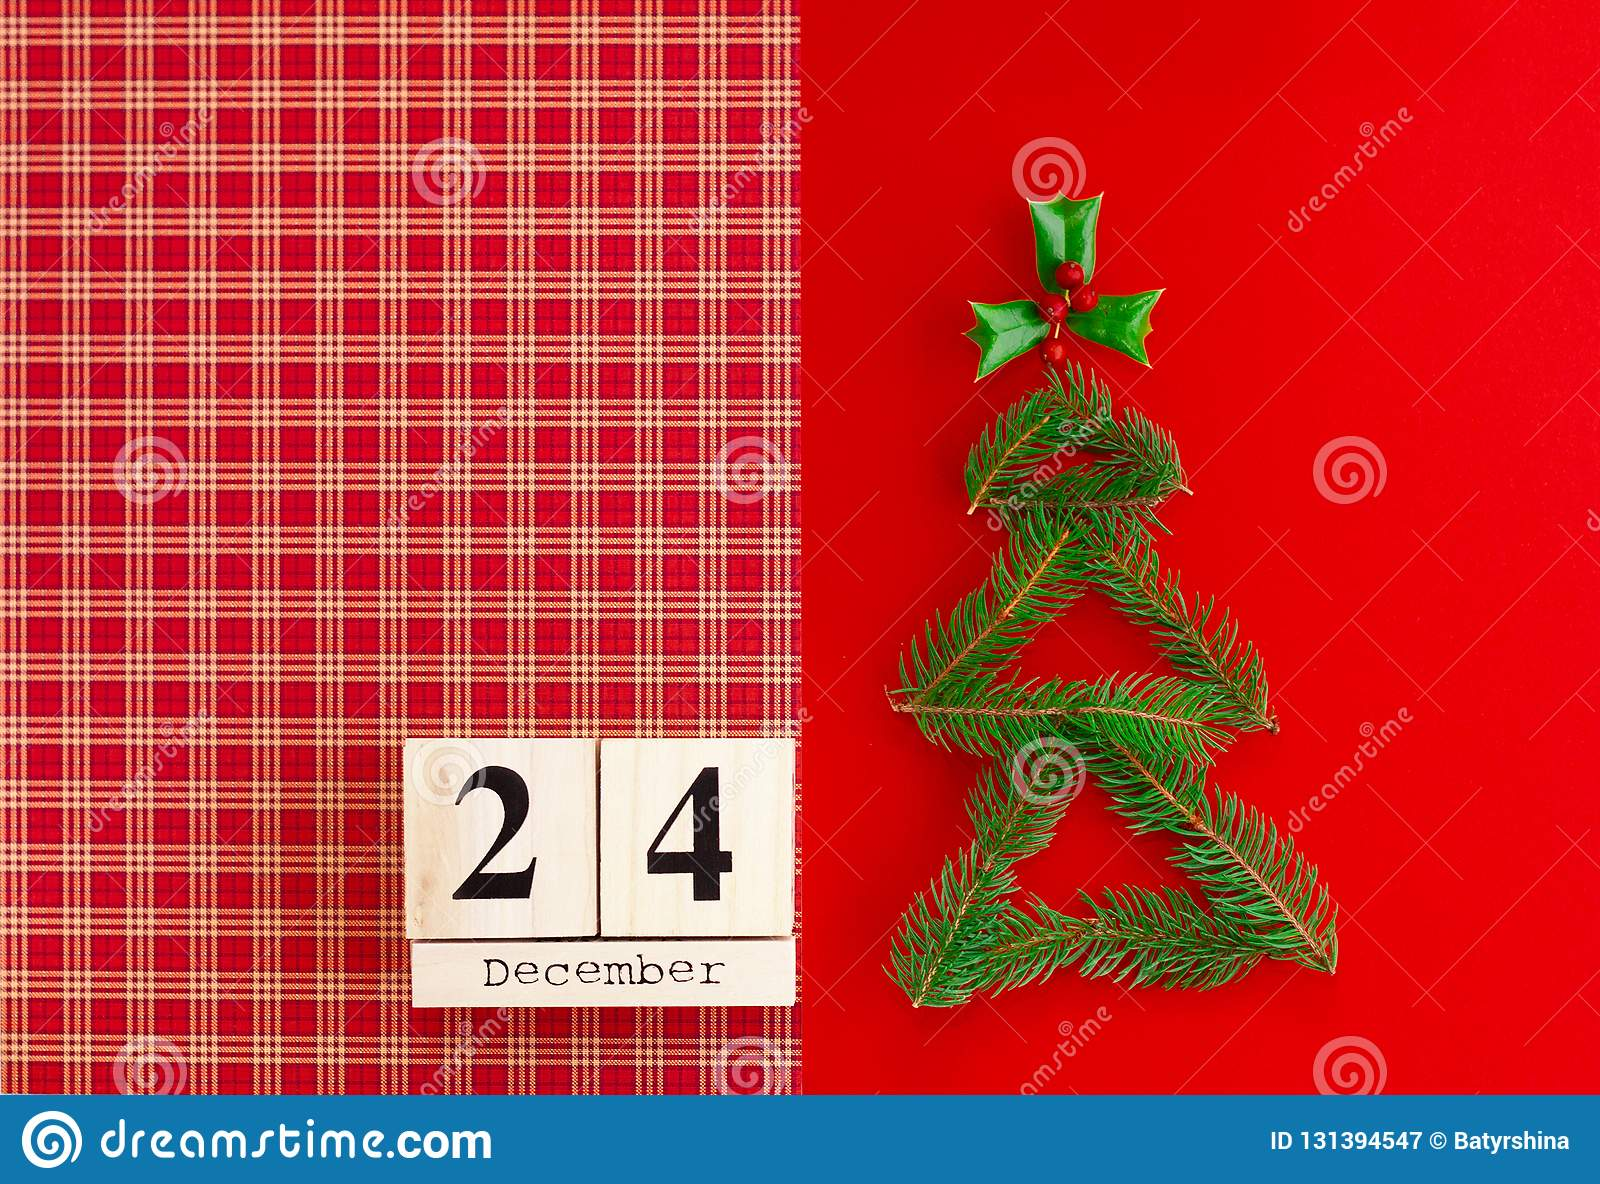 wooden calendar with 24 december date on the red background new year and christmas concept